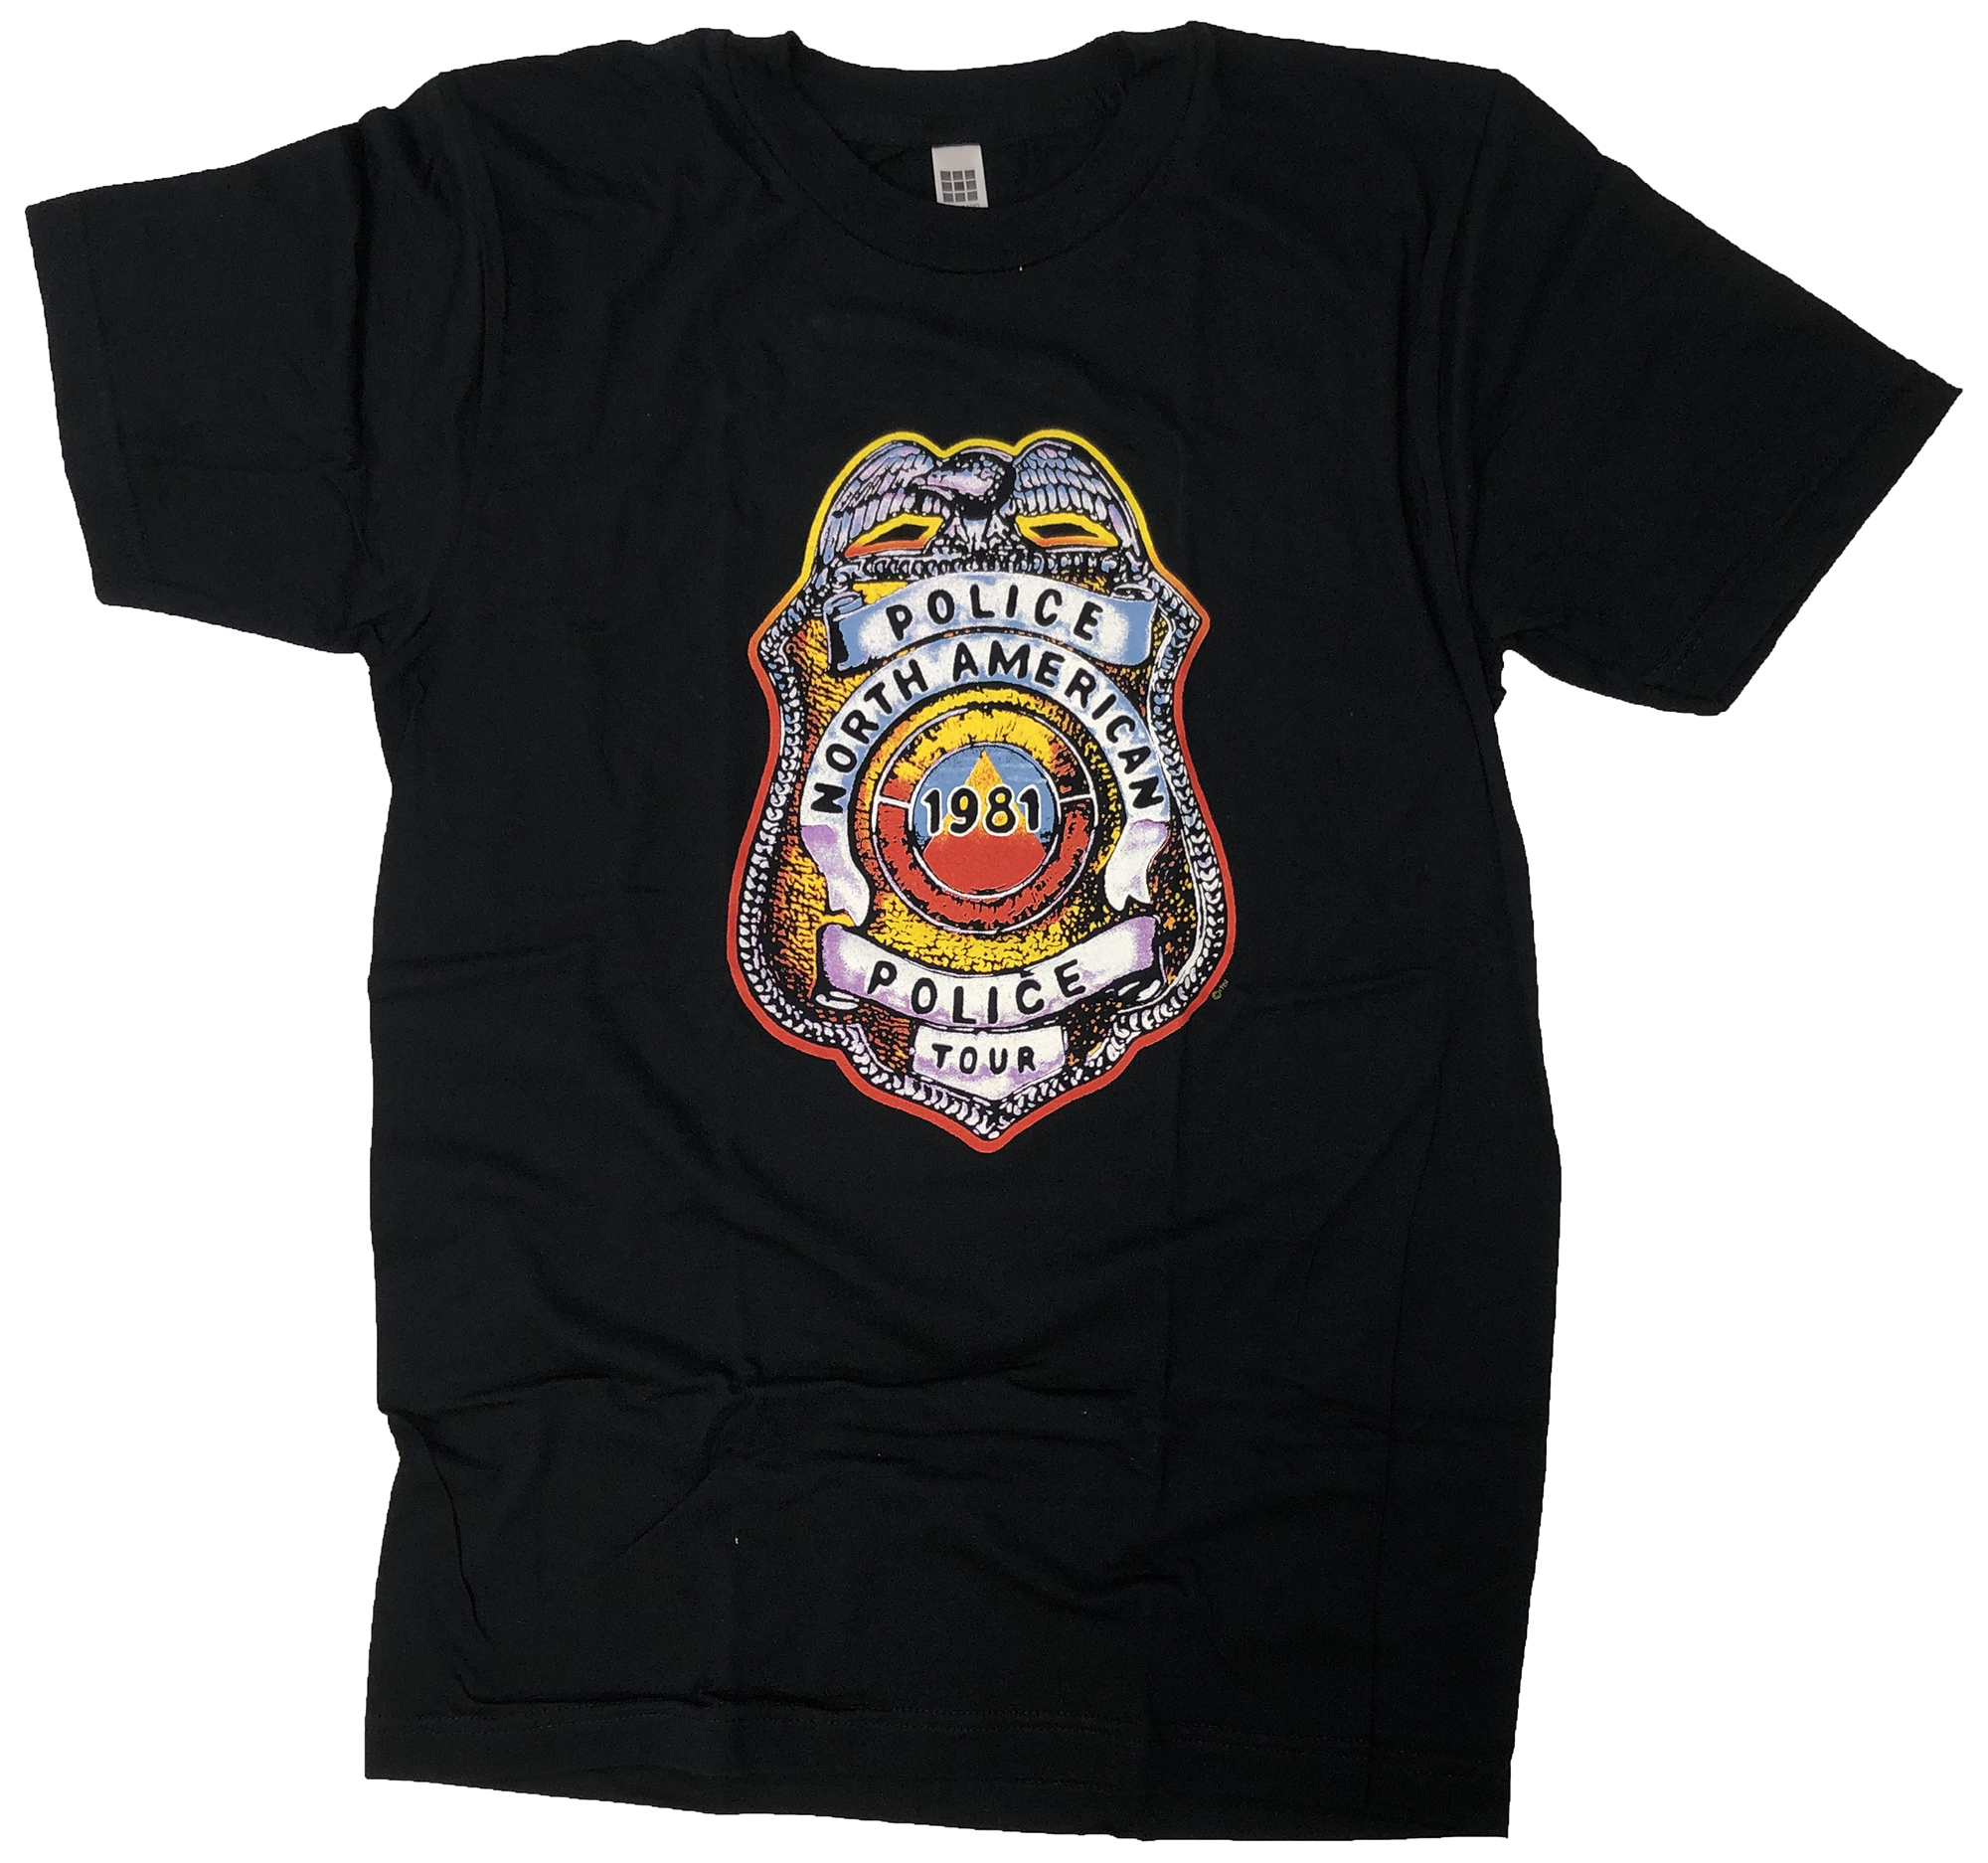 The Police Men's Retro T-Shirt